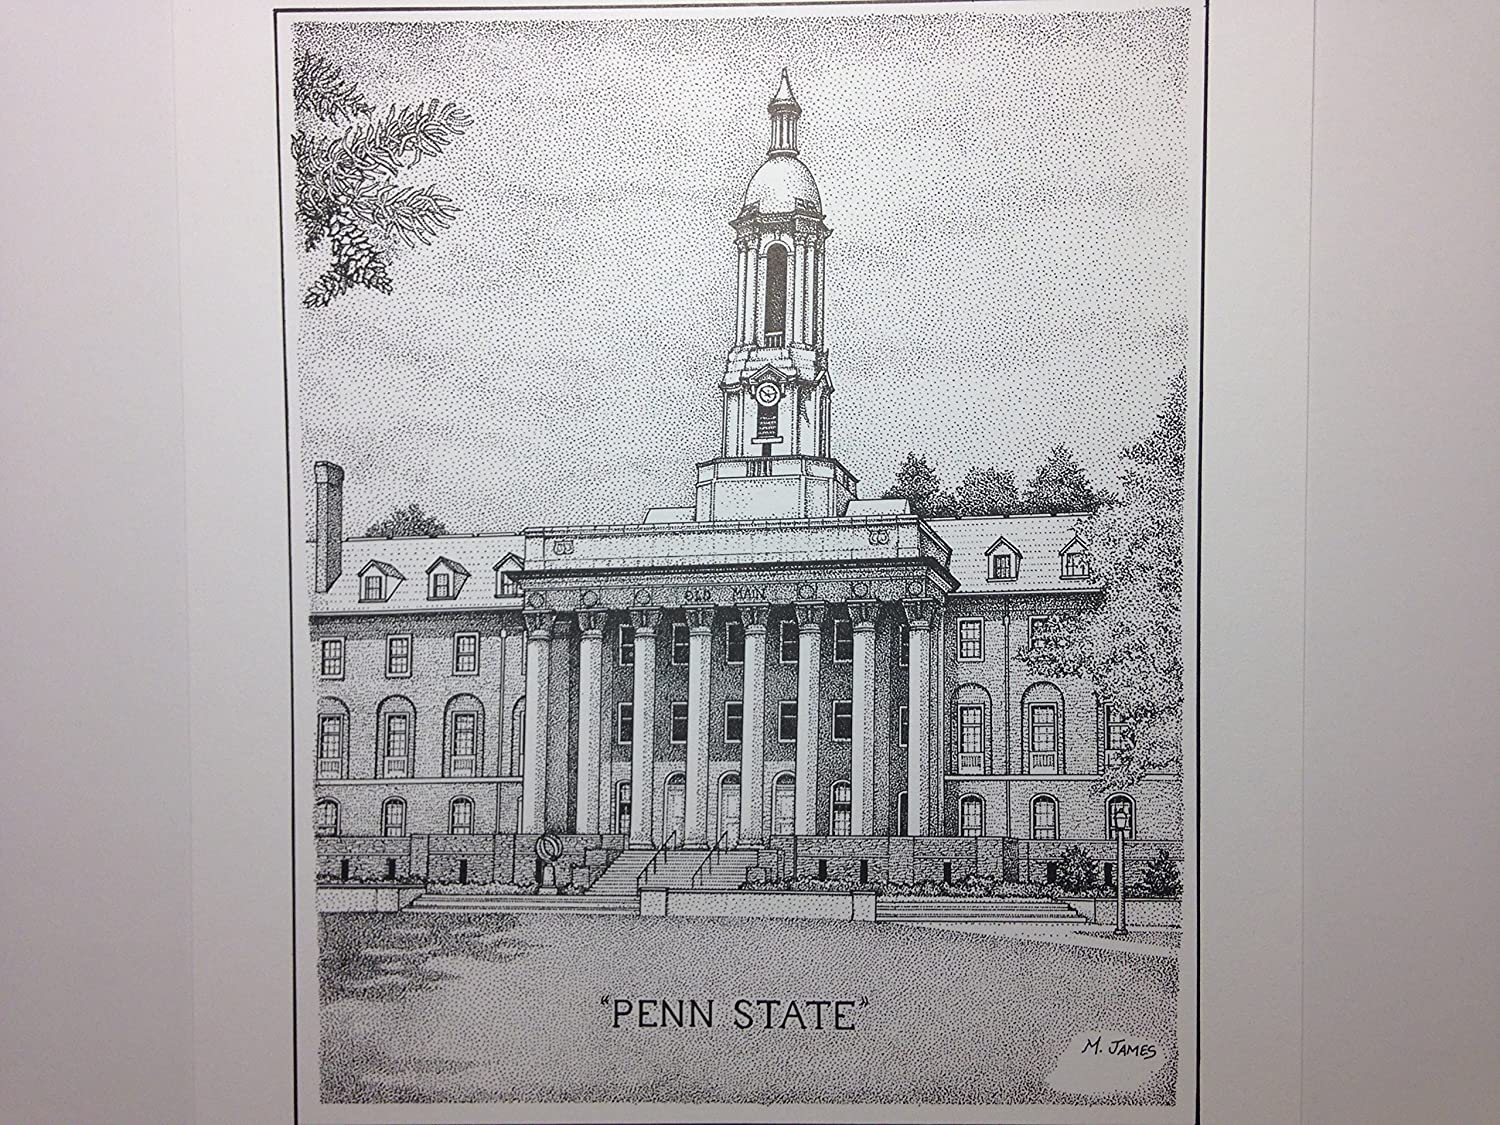 Penn State - Old Main 8x10 pen and ink print